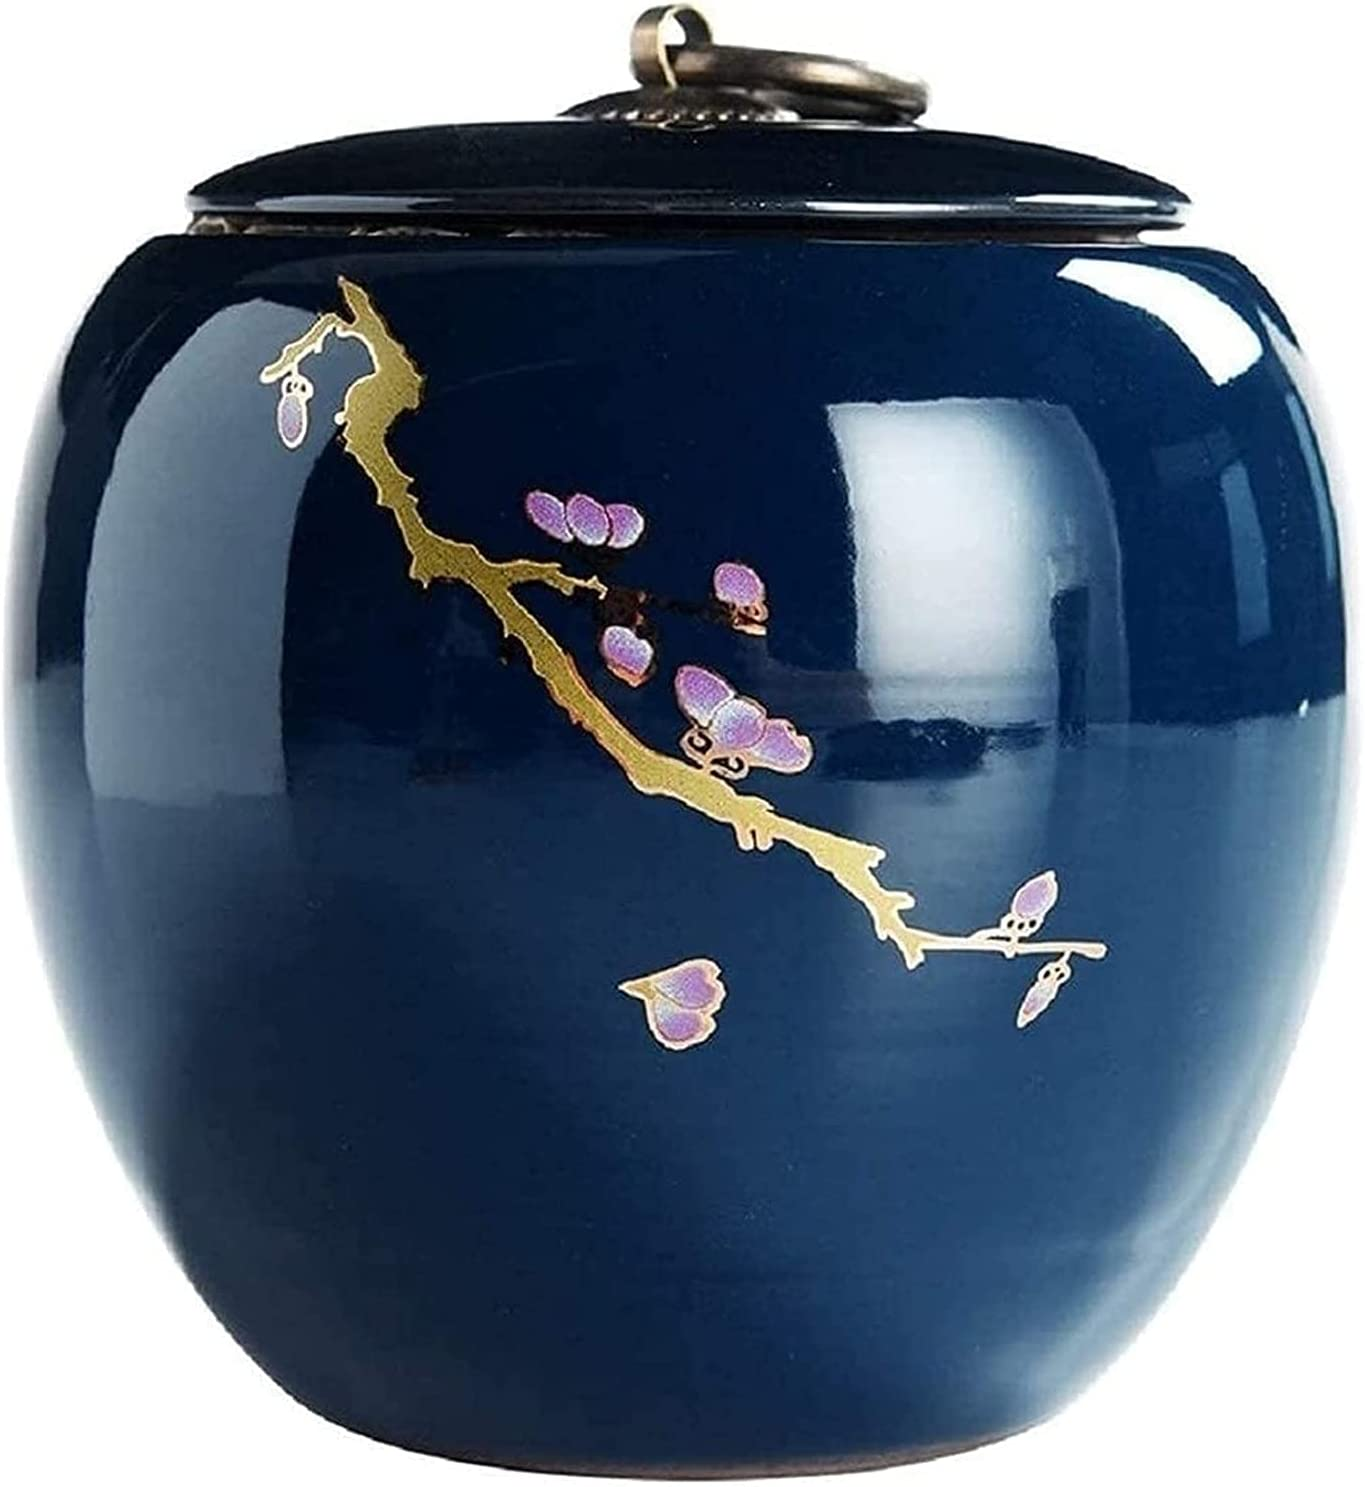 OLLY- Urns Funeral Urn Medium Ash Canister Blue Max 81% OFF Decorative Size Columbus Mall